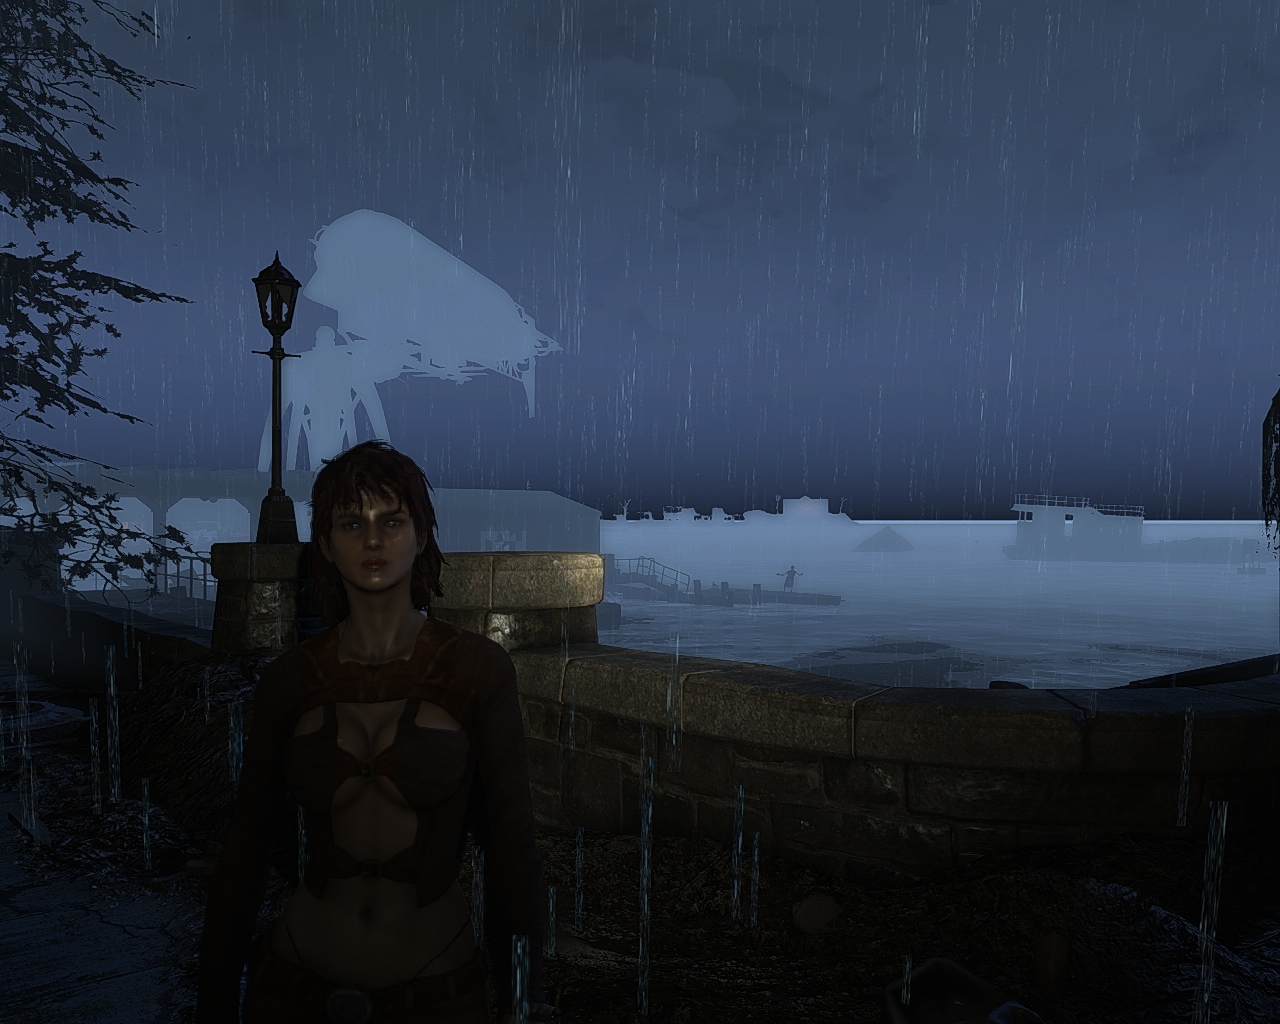 ENB ISSUES (DISTANT OBJECTS ARE DISCOLORED DURING WEATHERS